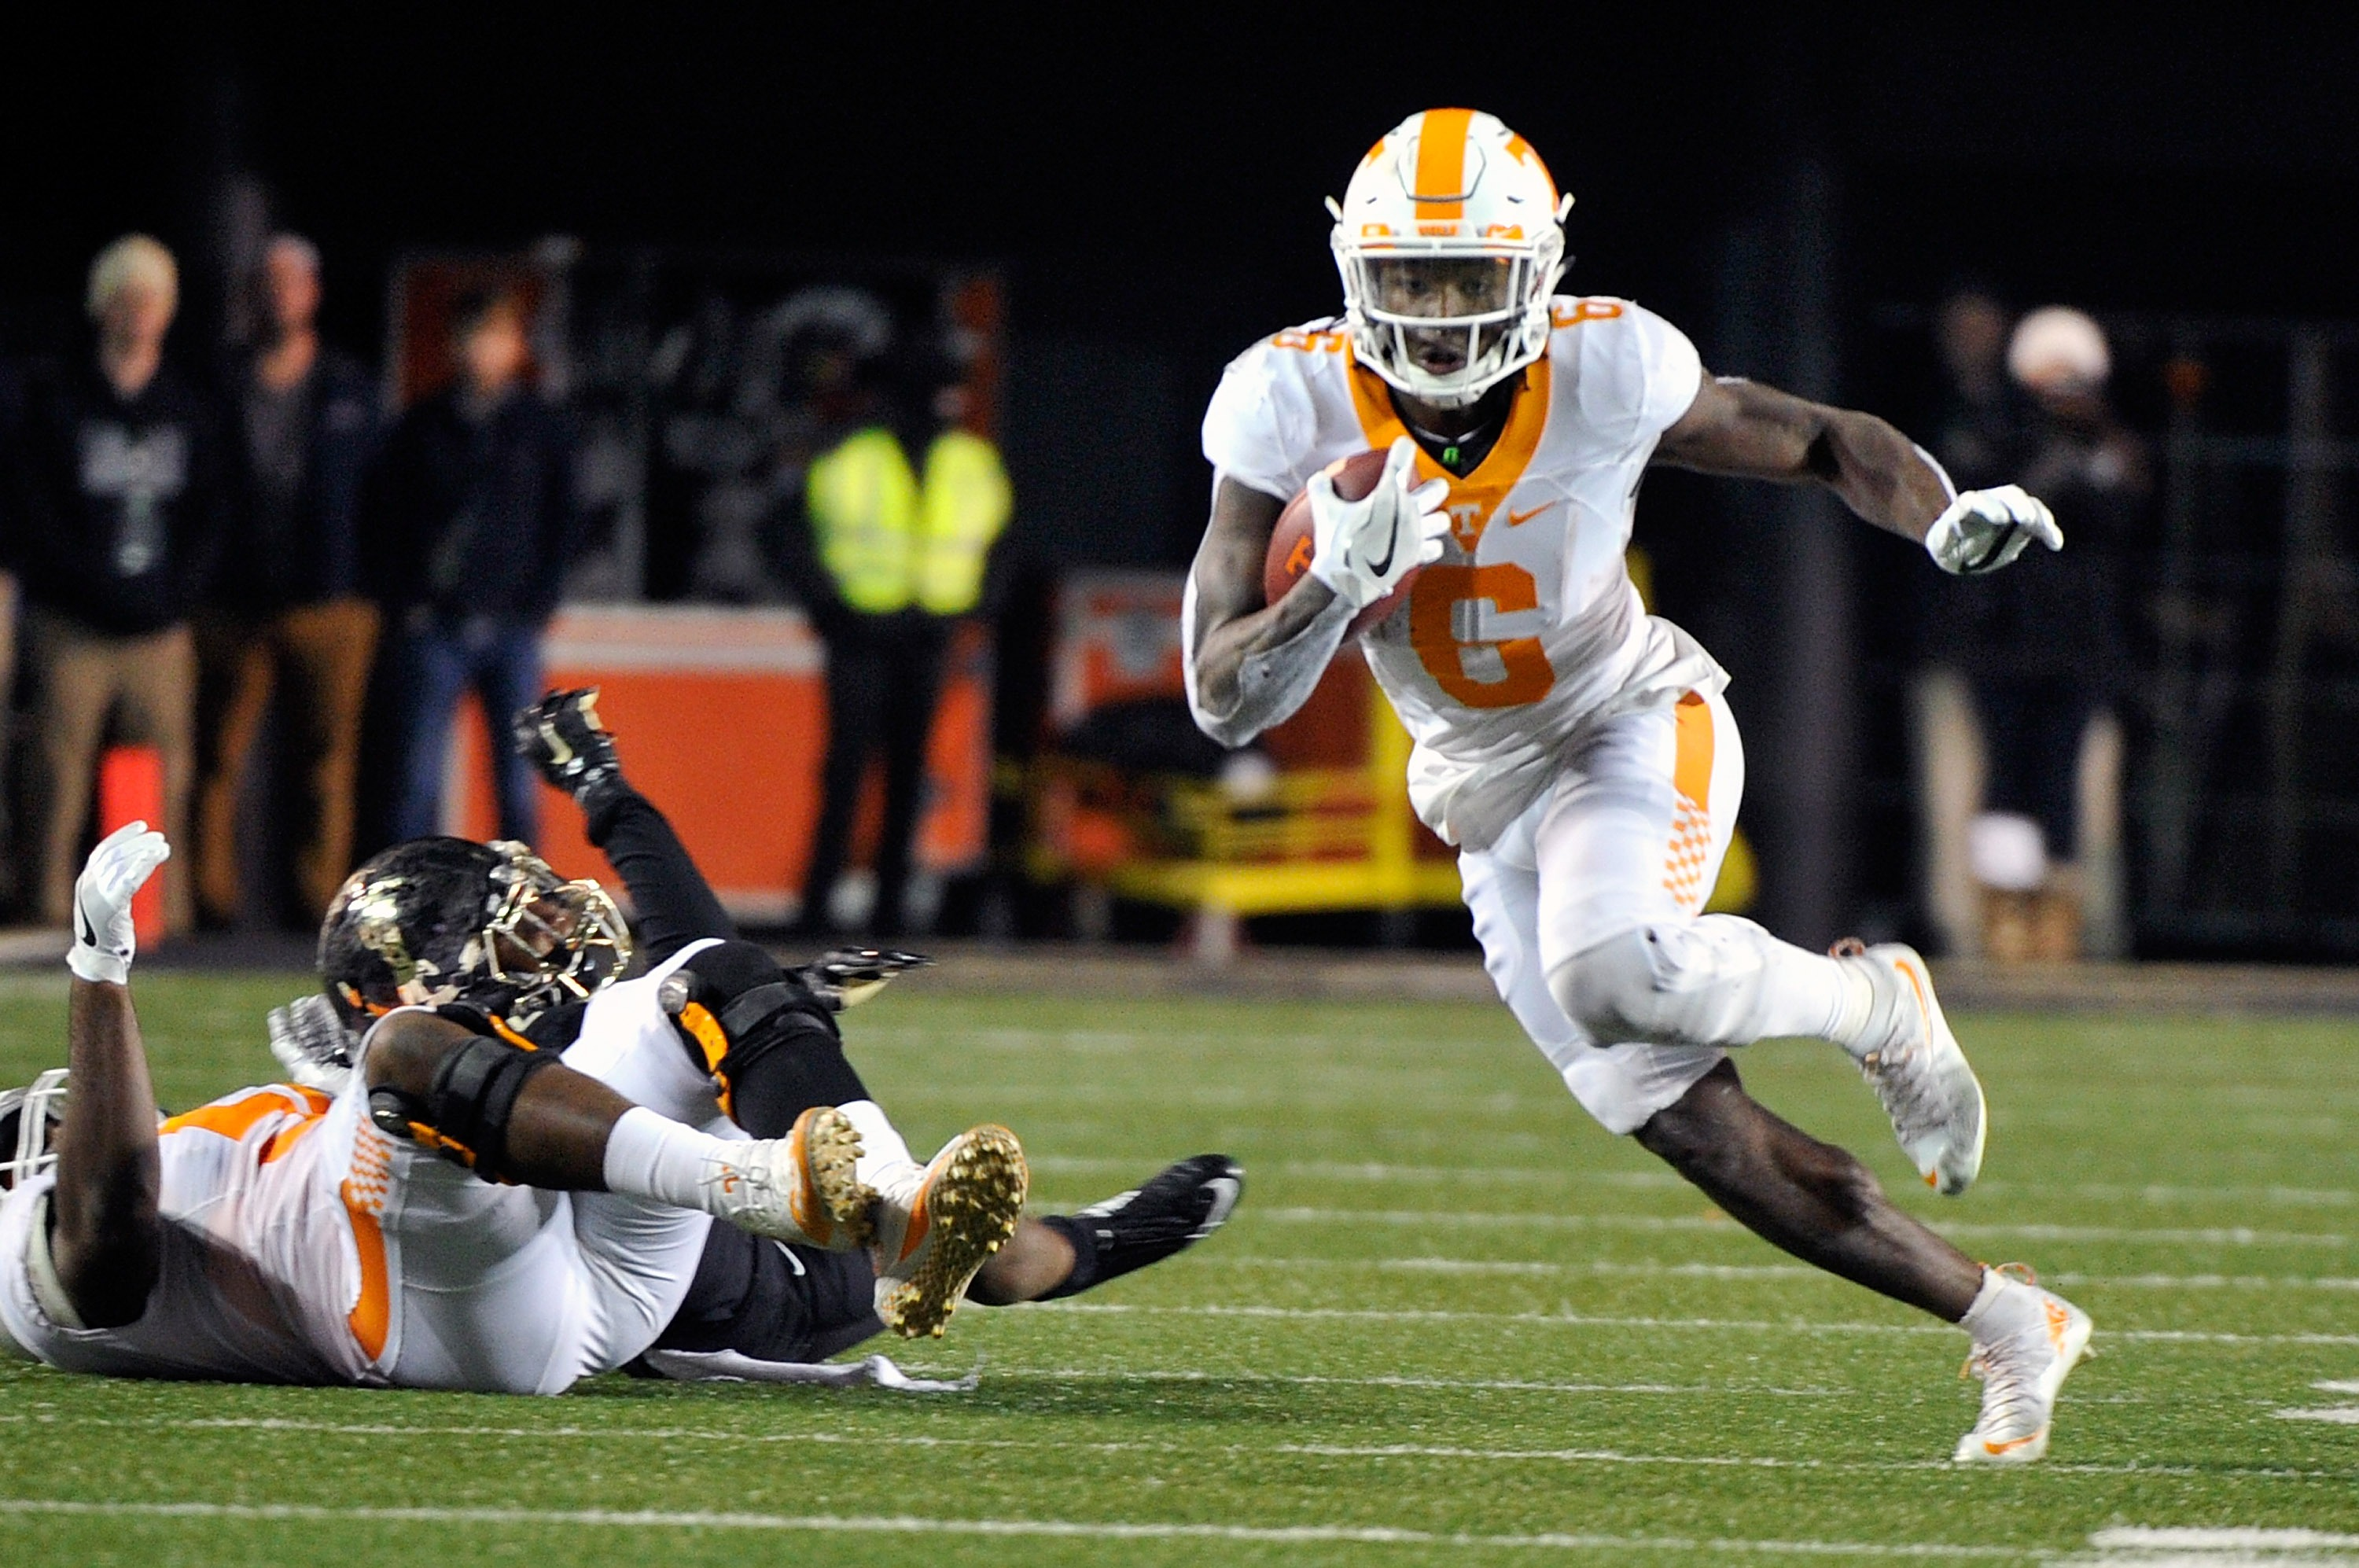 Tennessee running back Alvin Kamara would be a surprising first-round pick by the Buffalo Bills. (Getty Images)